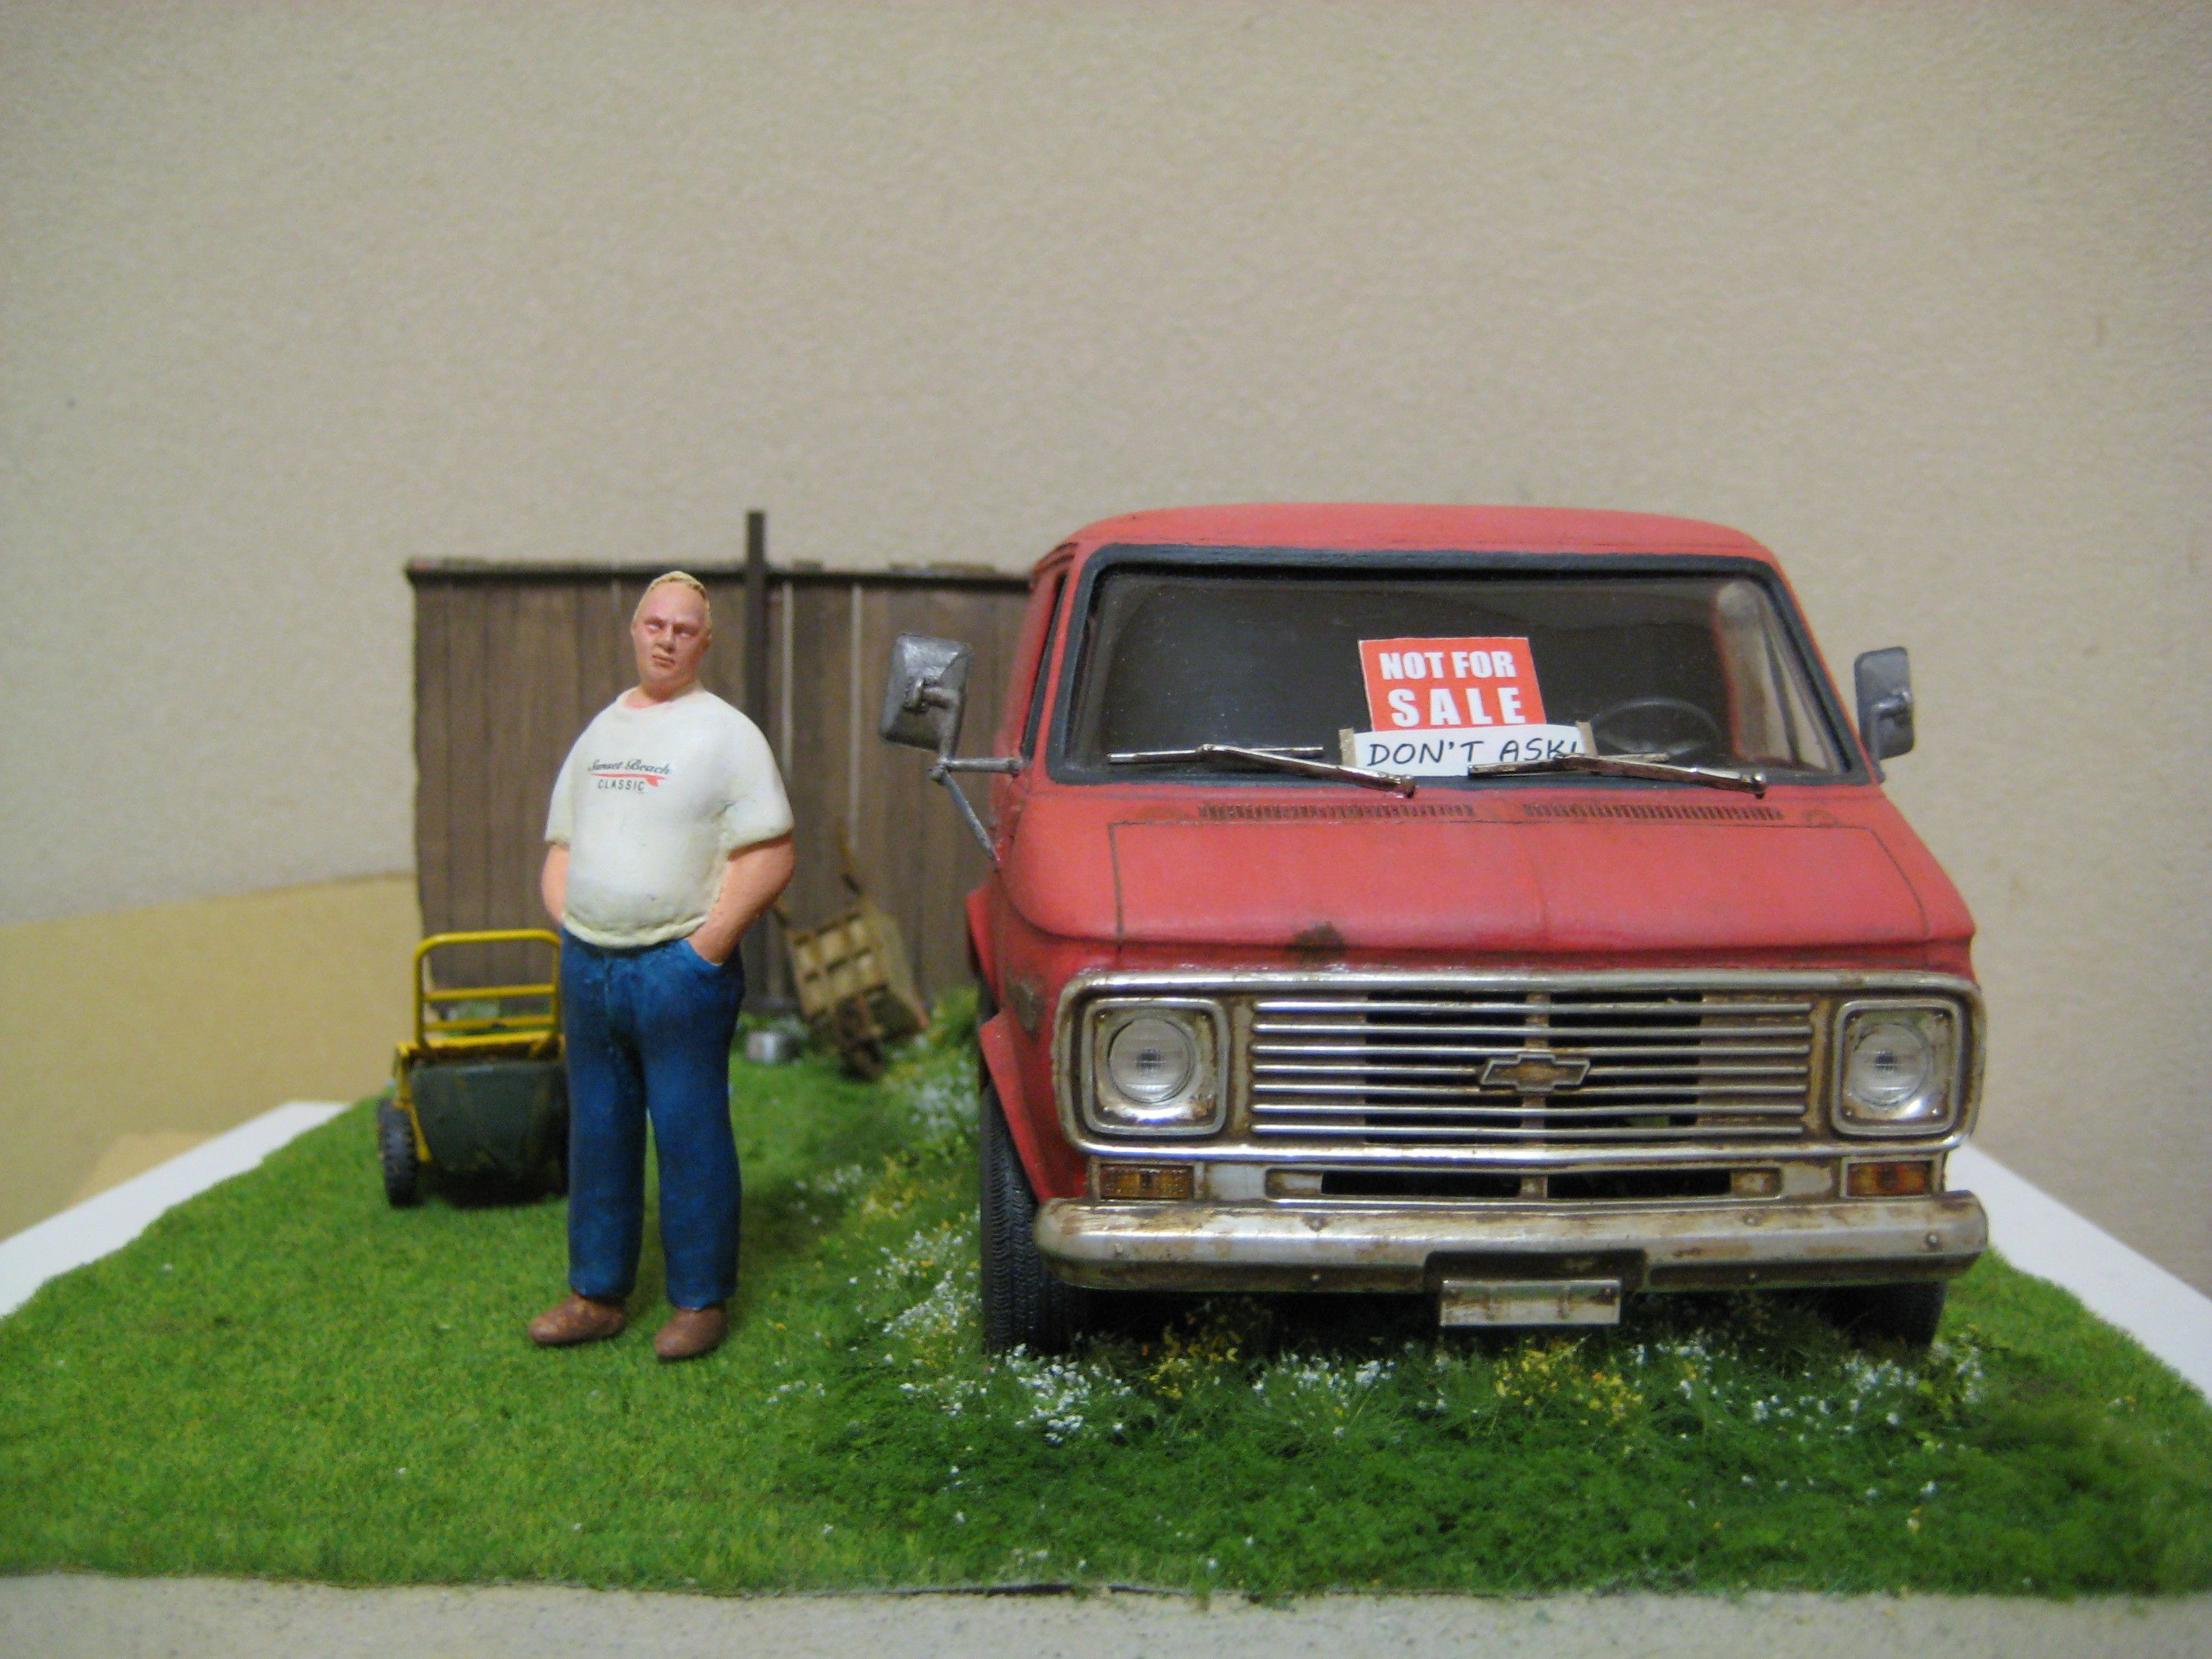 Chevy not for sale 1 25 scale model diorama scale for One car garage kits sale